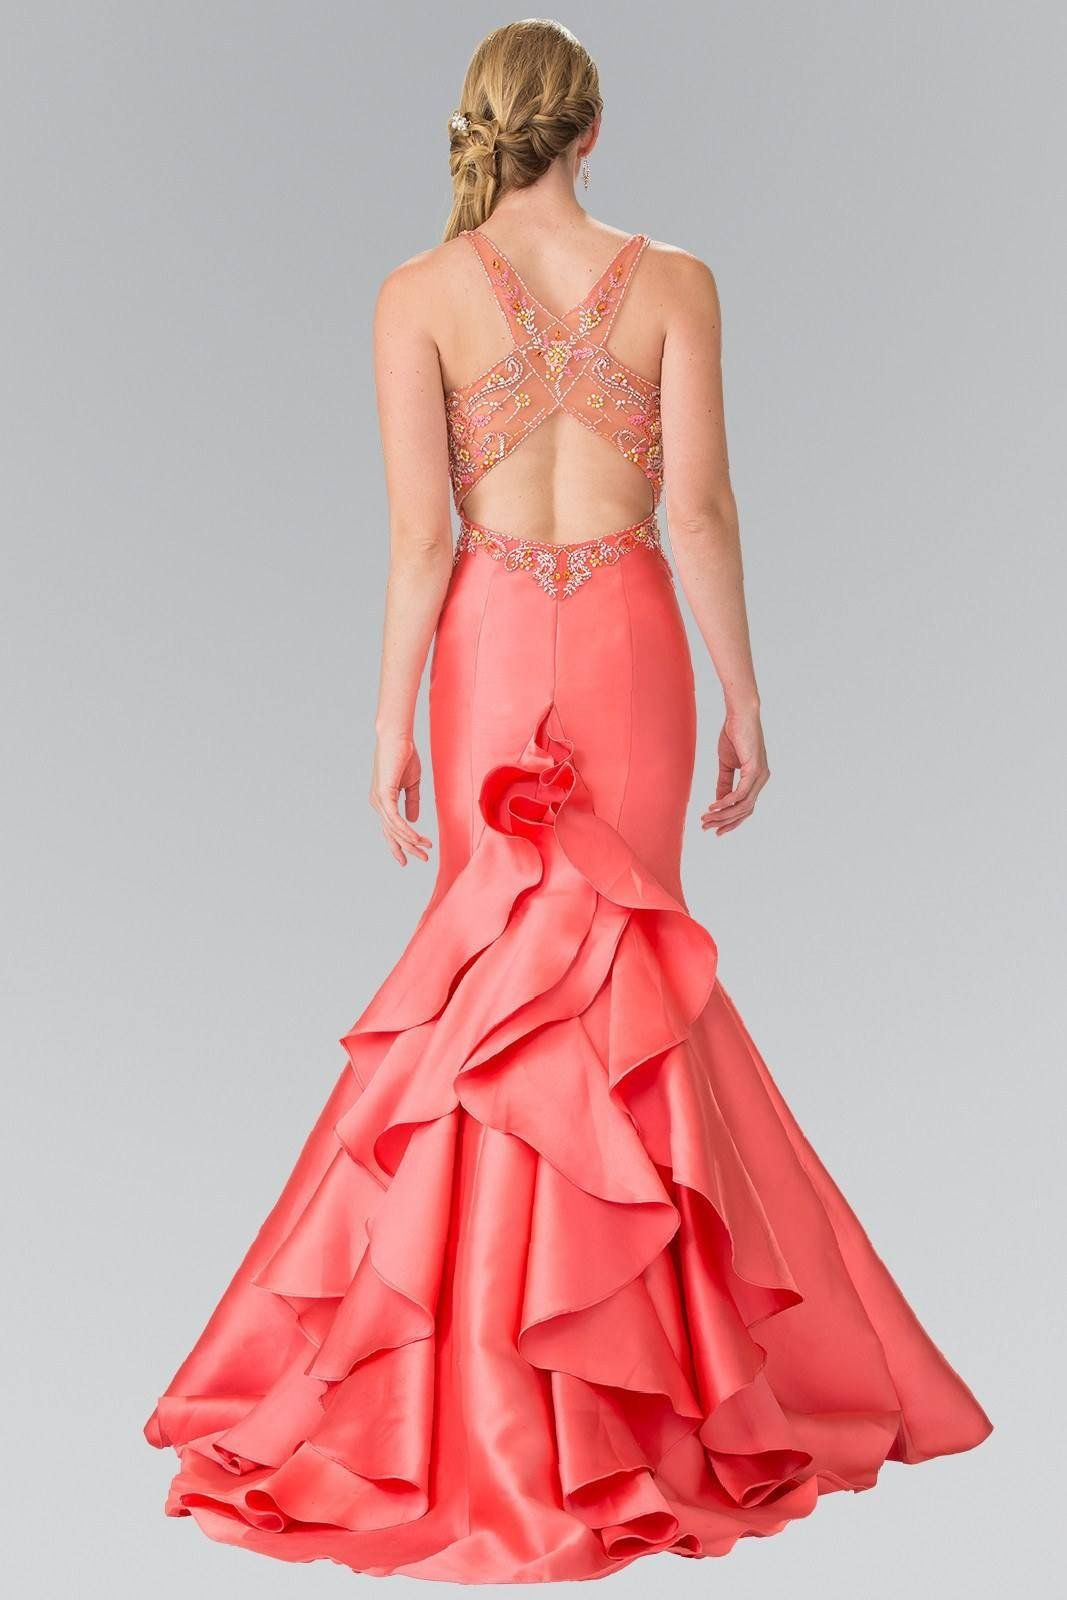 Mermaid style prom dress with ruffles gl products pinterest